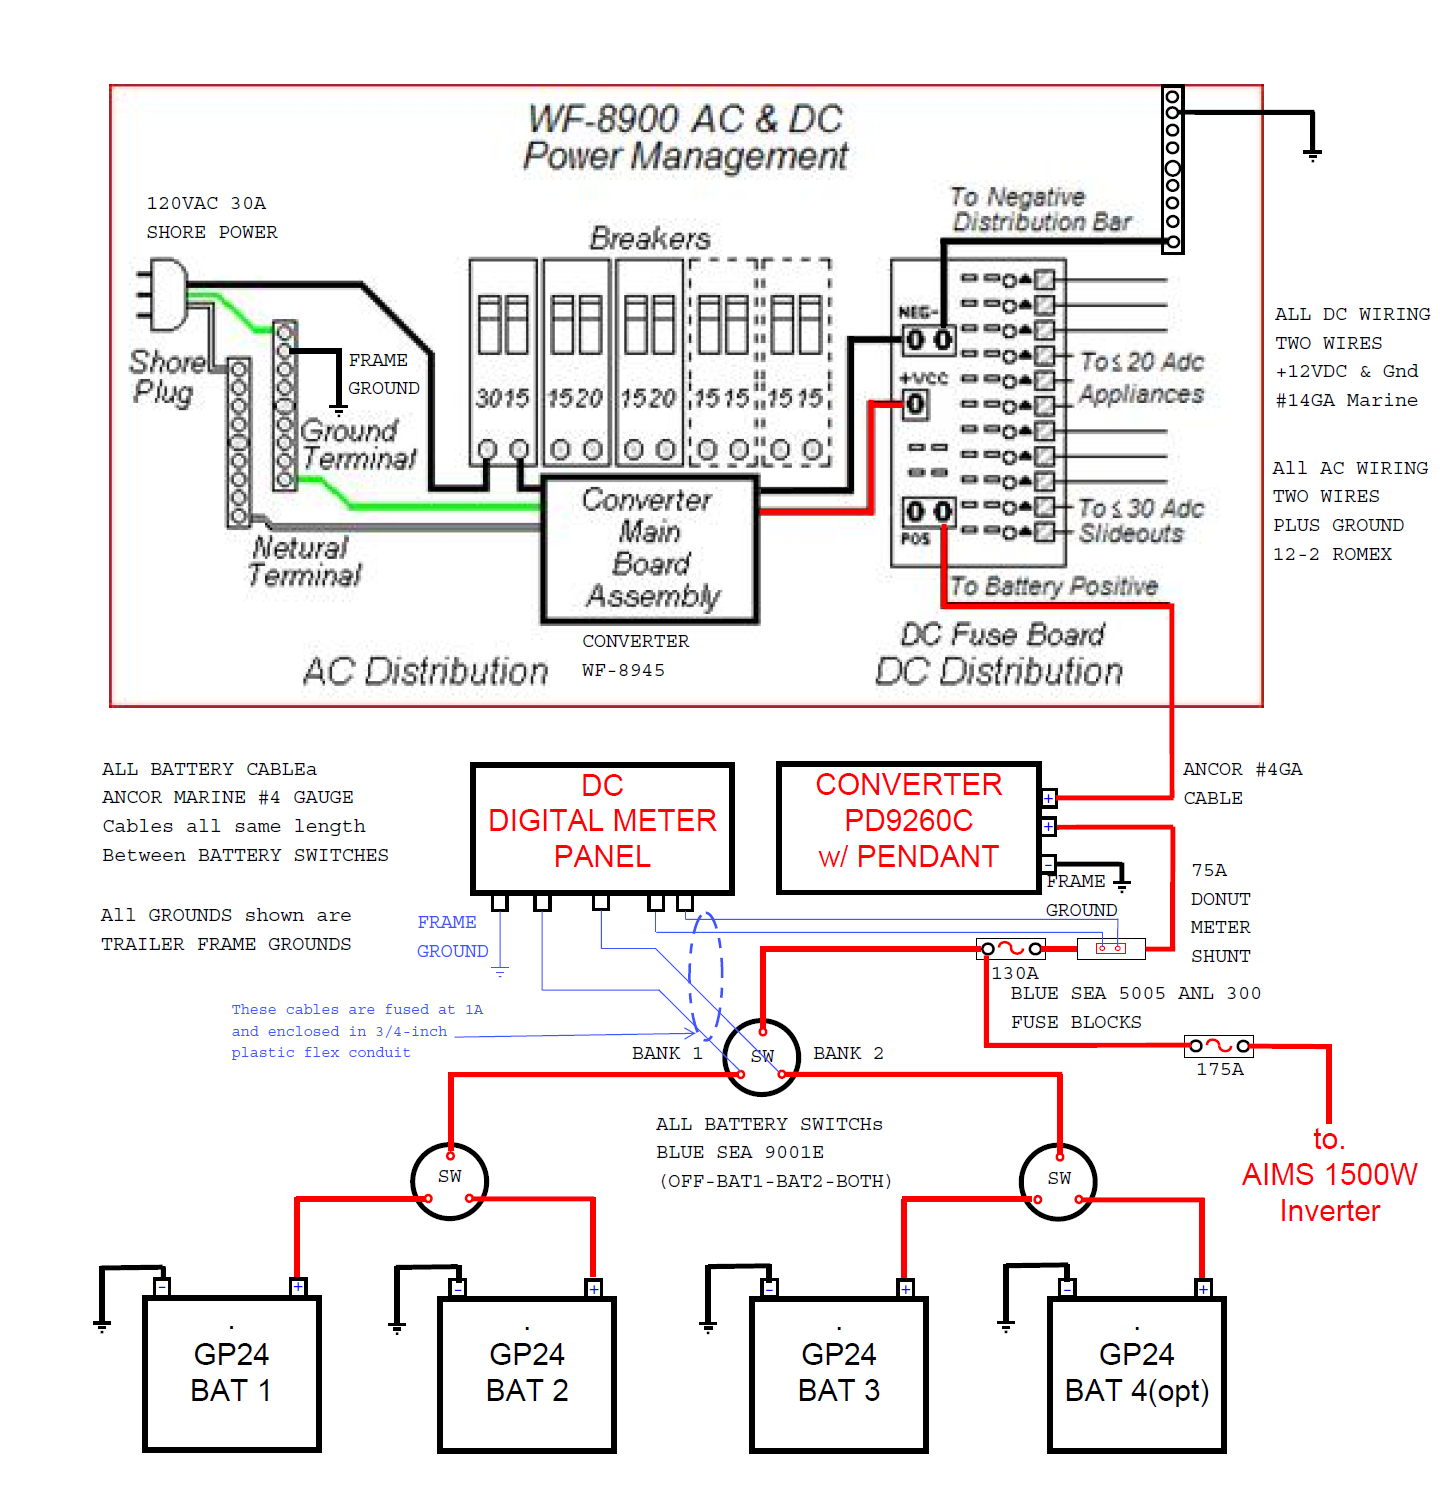 Rv Converter Charger Wiring Diagram | Wiring Diagram - Rv Converter Charger Wiring Diagram